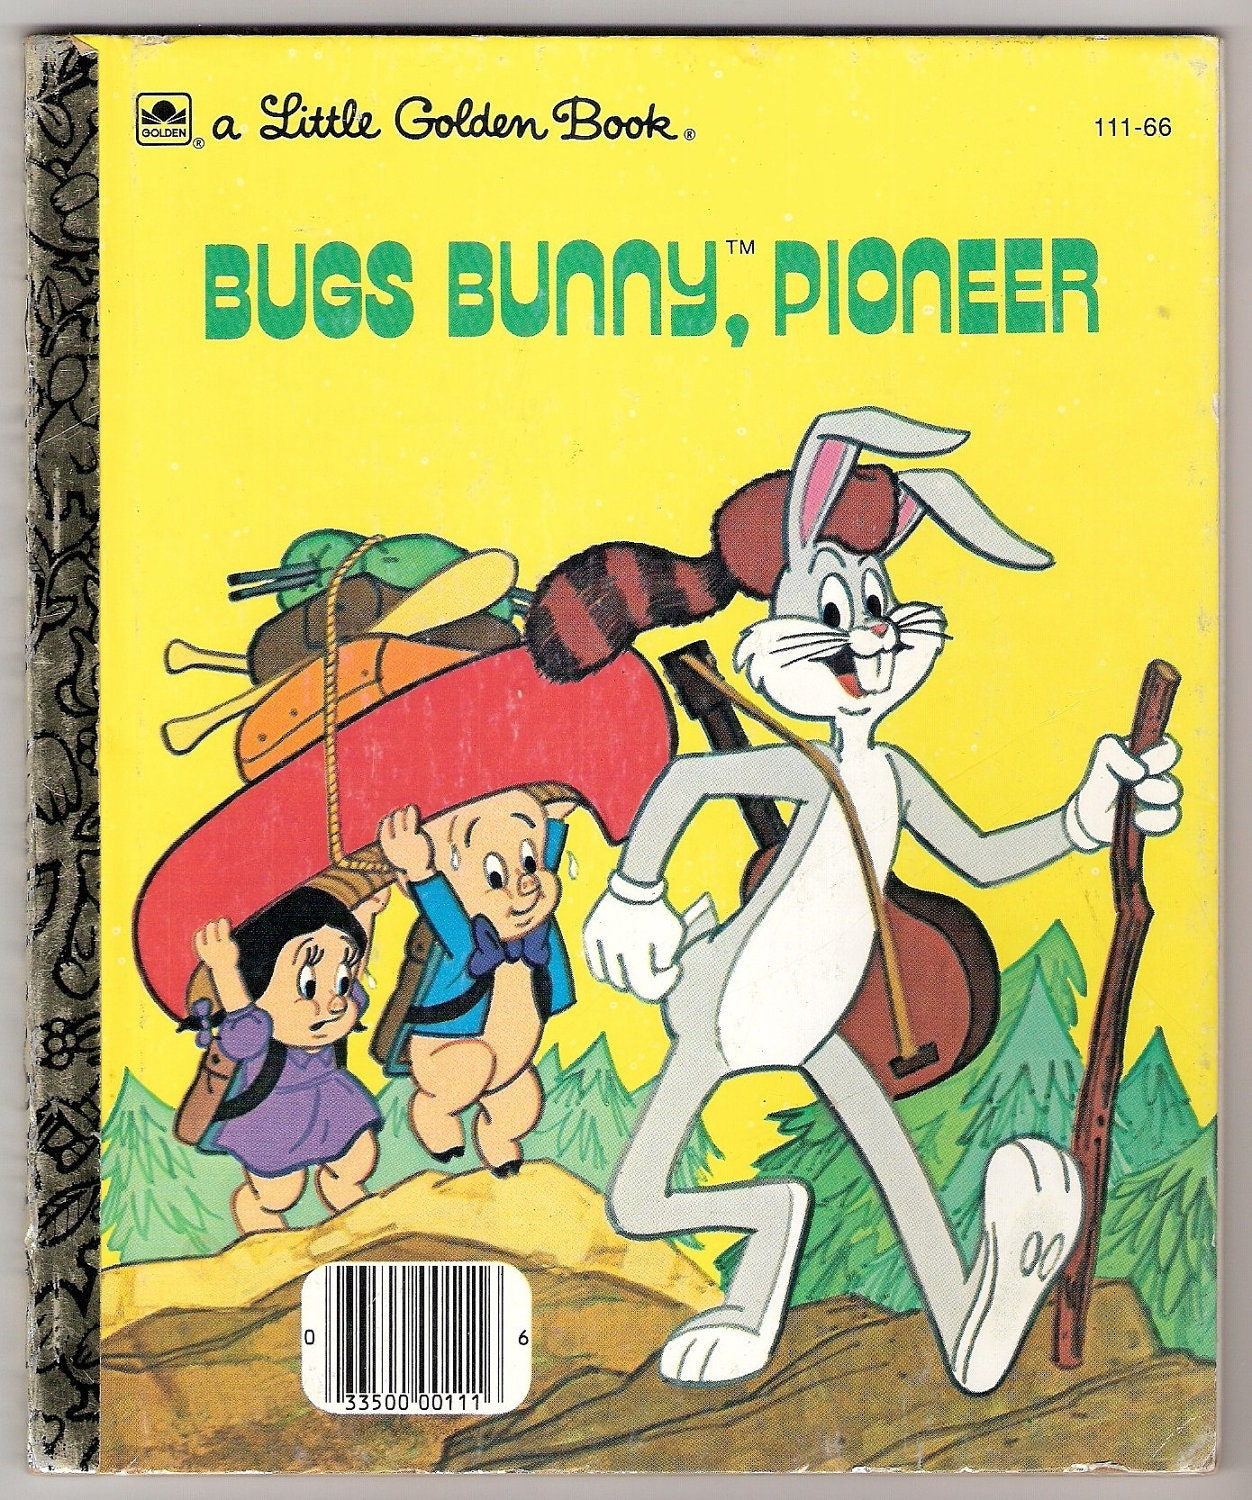 Bugs Bunny Pioneer Vintage Little Golden Book Illustrated By